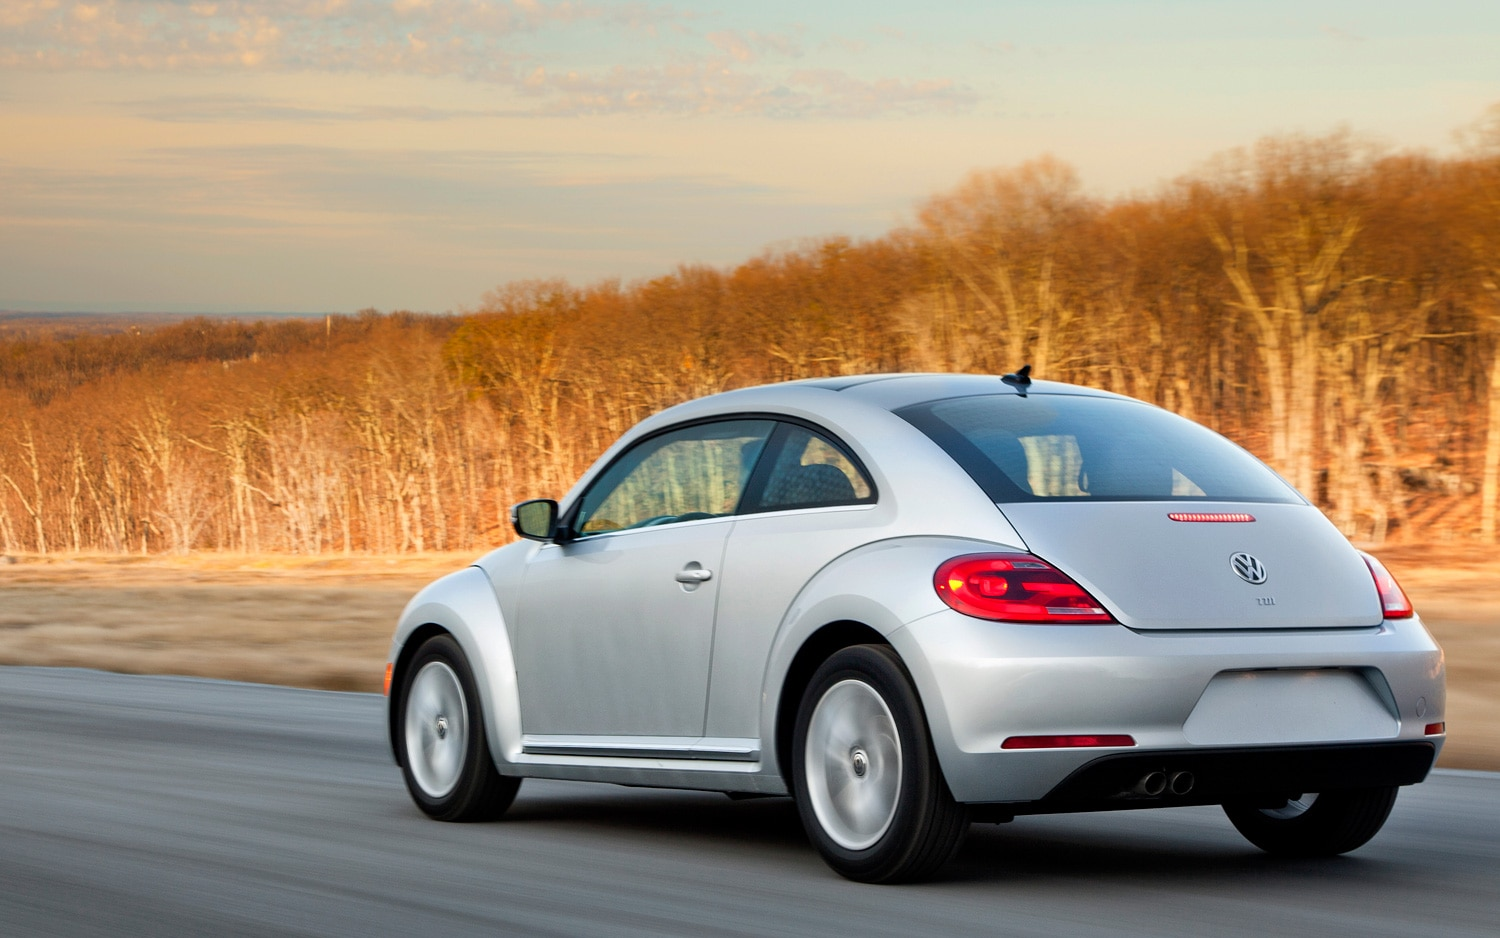 2013 Volkswagen Beetle TDI Rear Three Quarter1